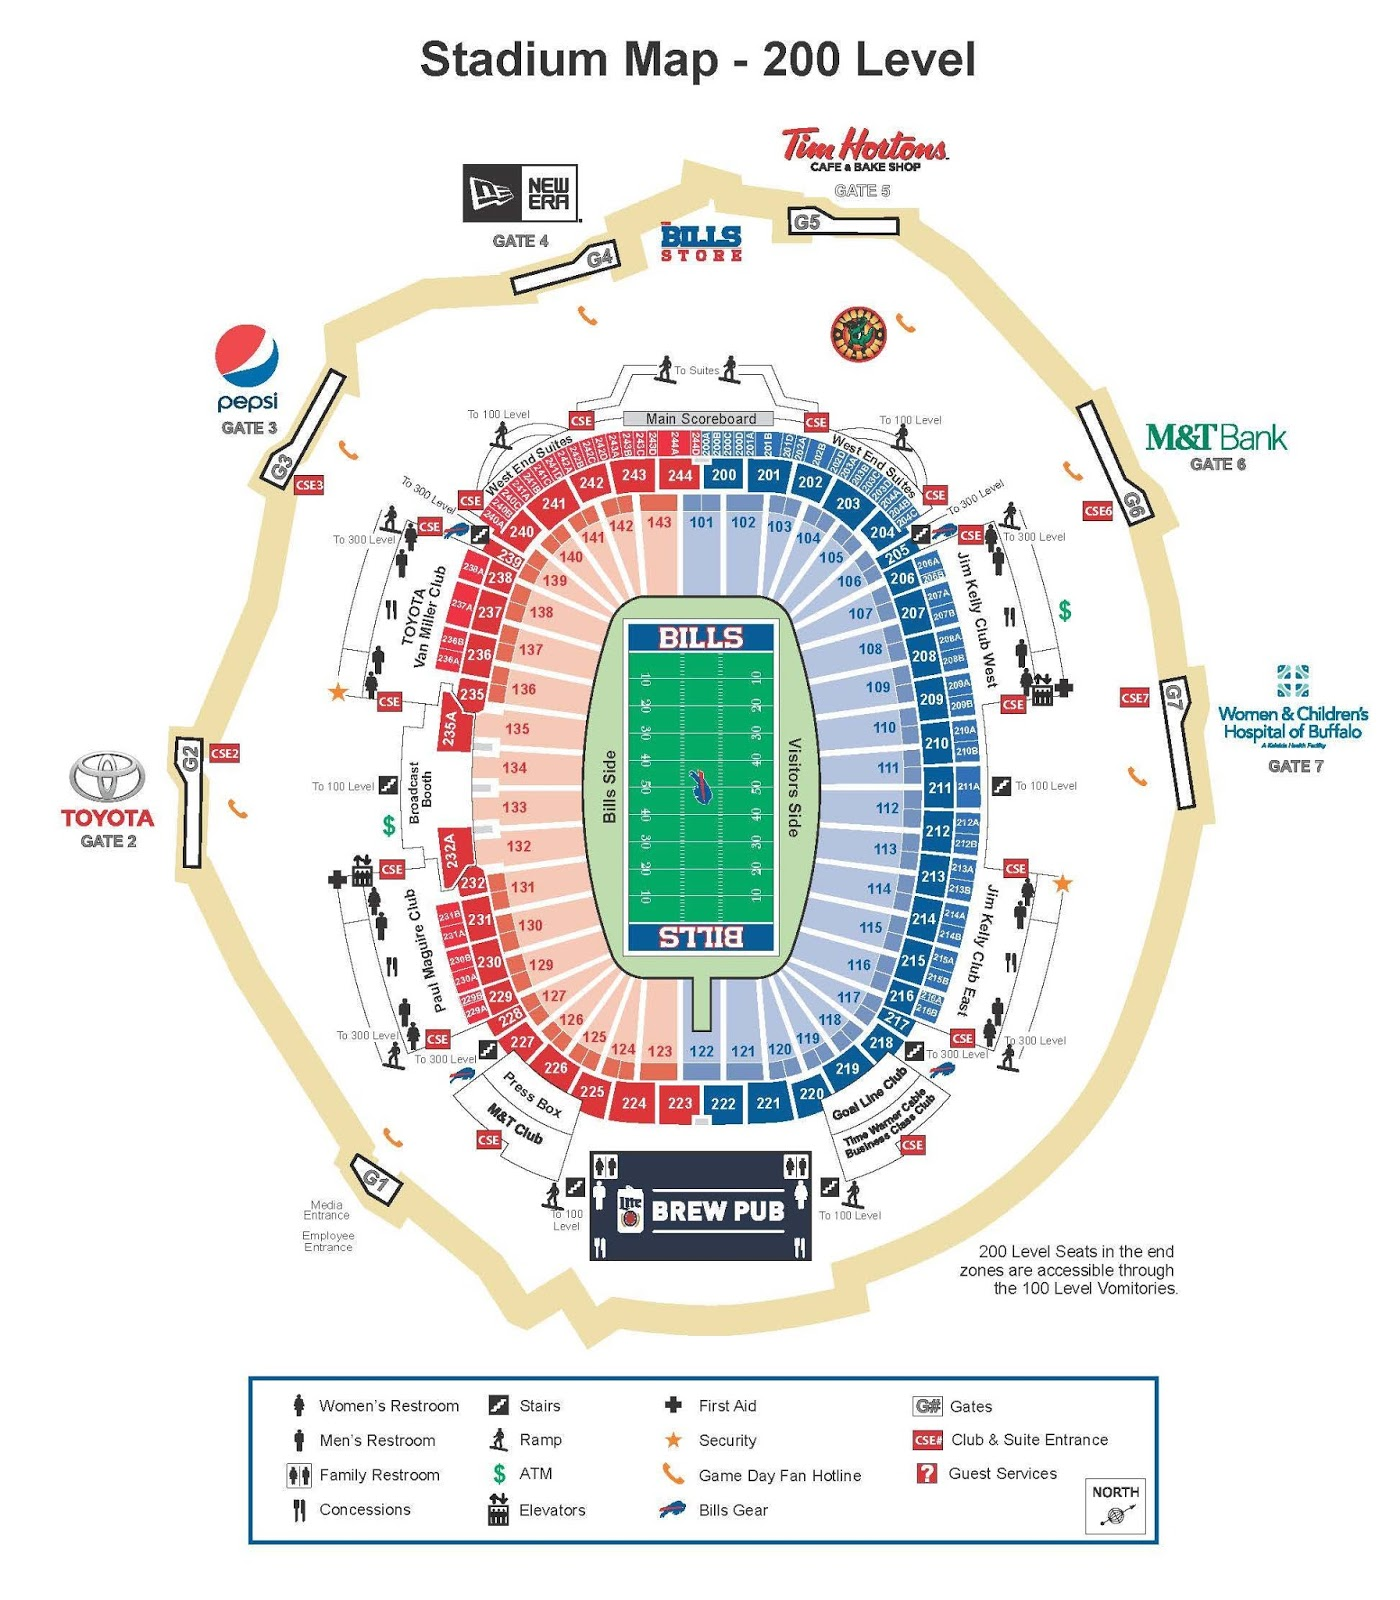 ralph wilson stadium seating - Images for ralph wilson stadium seating